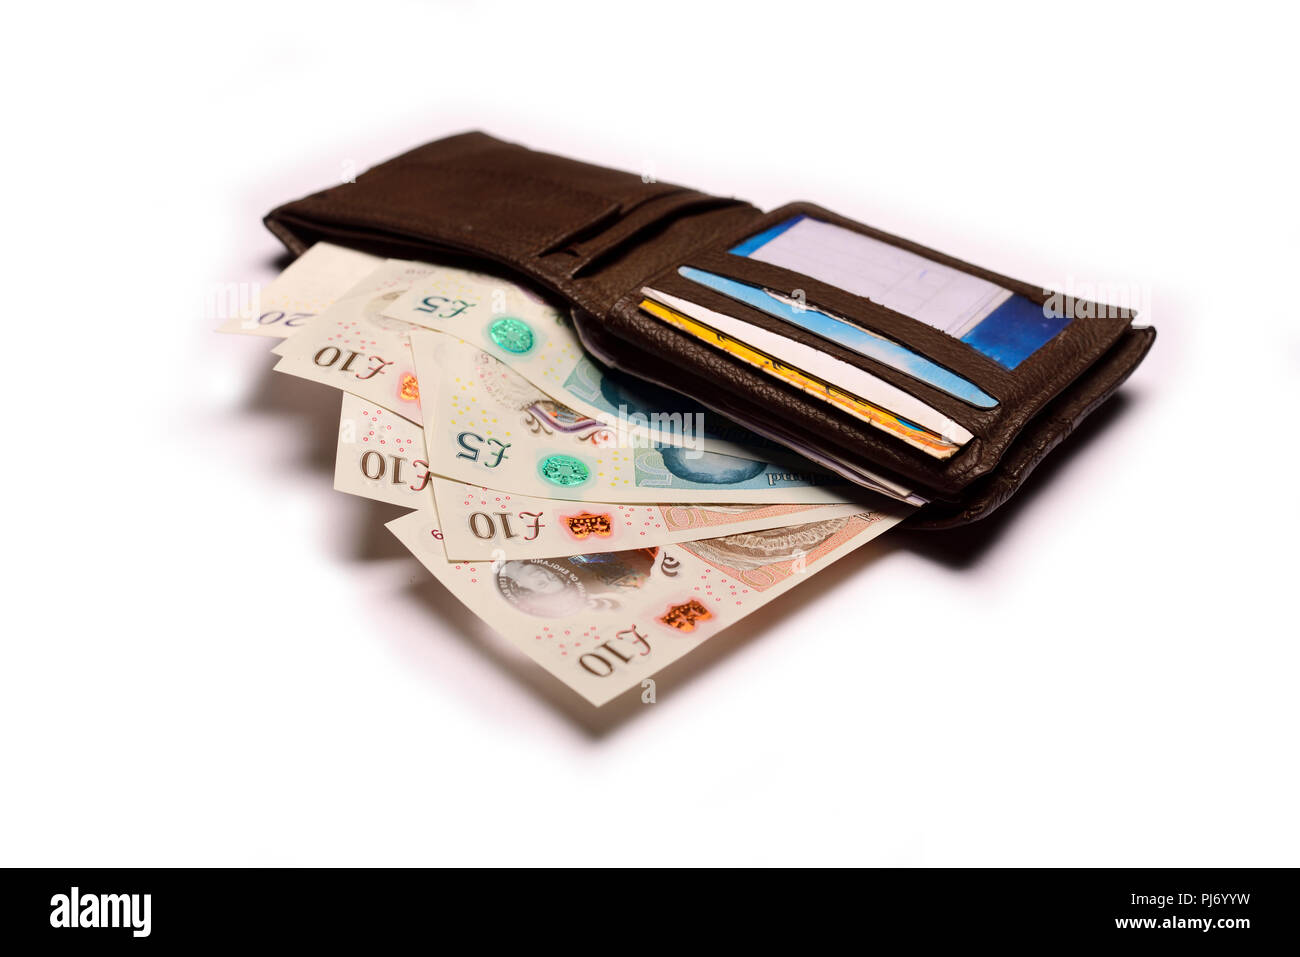 British currency Pound sterling in wallet on white background - Stock Image